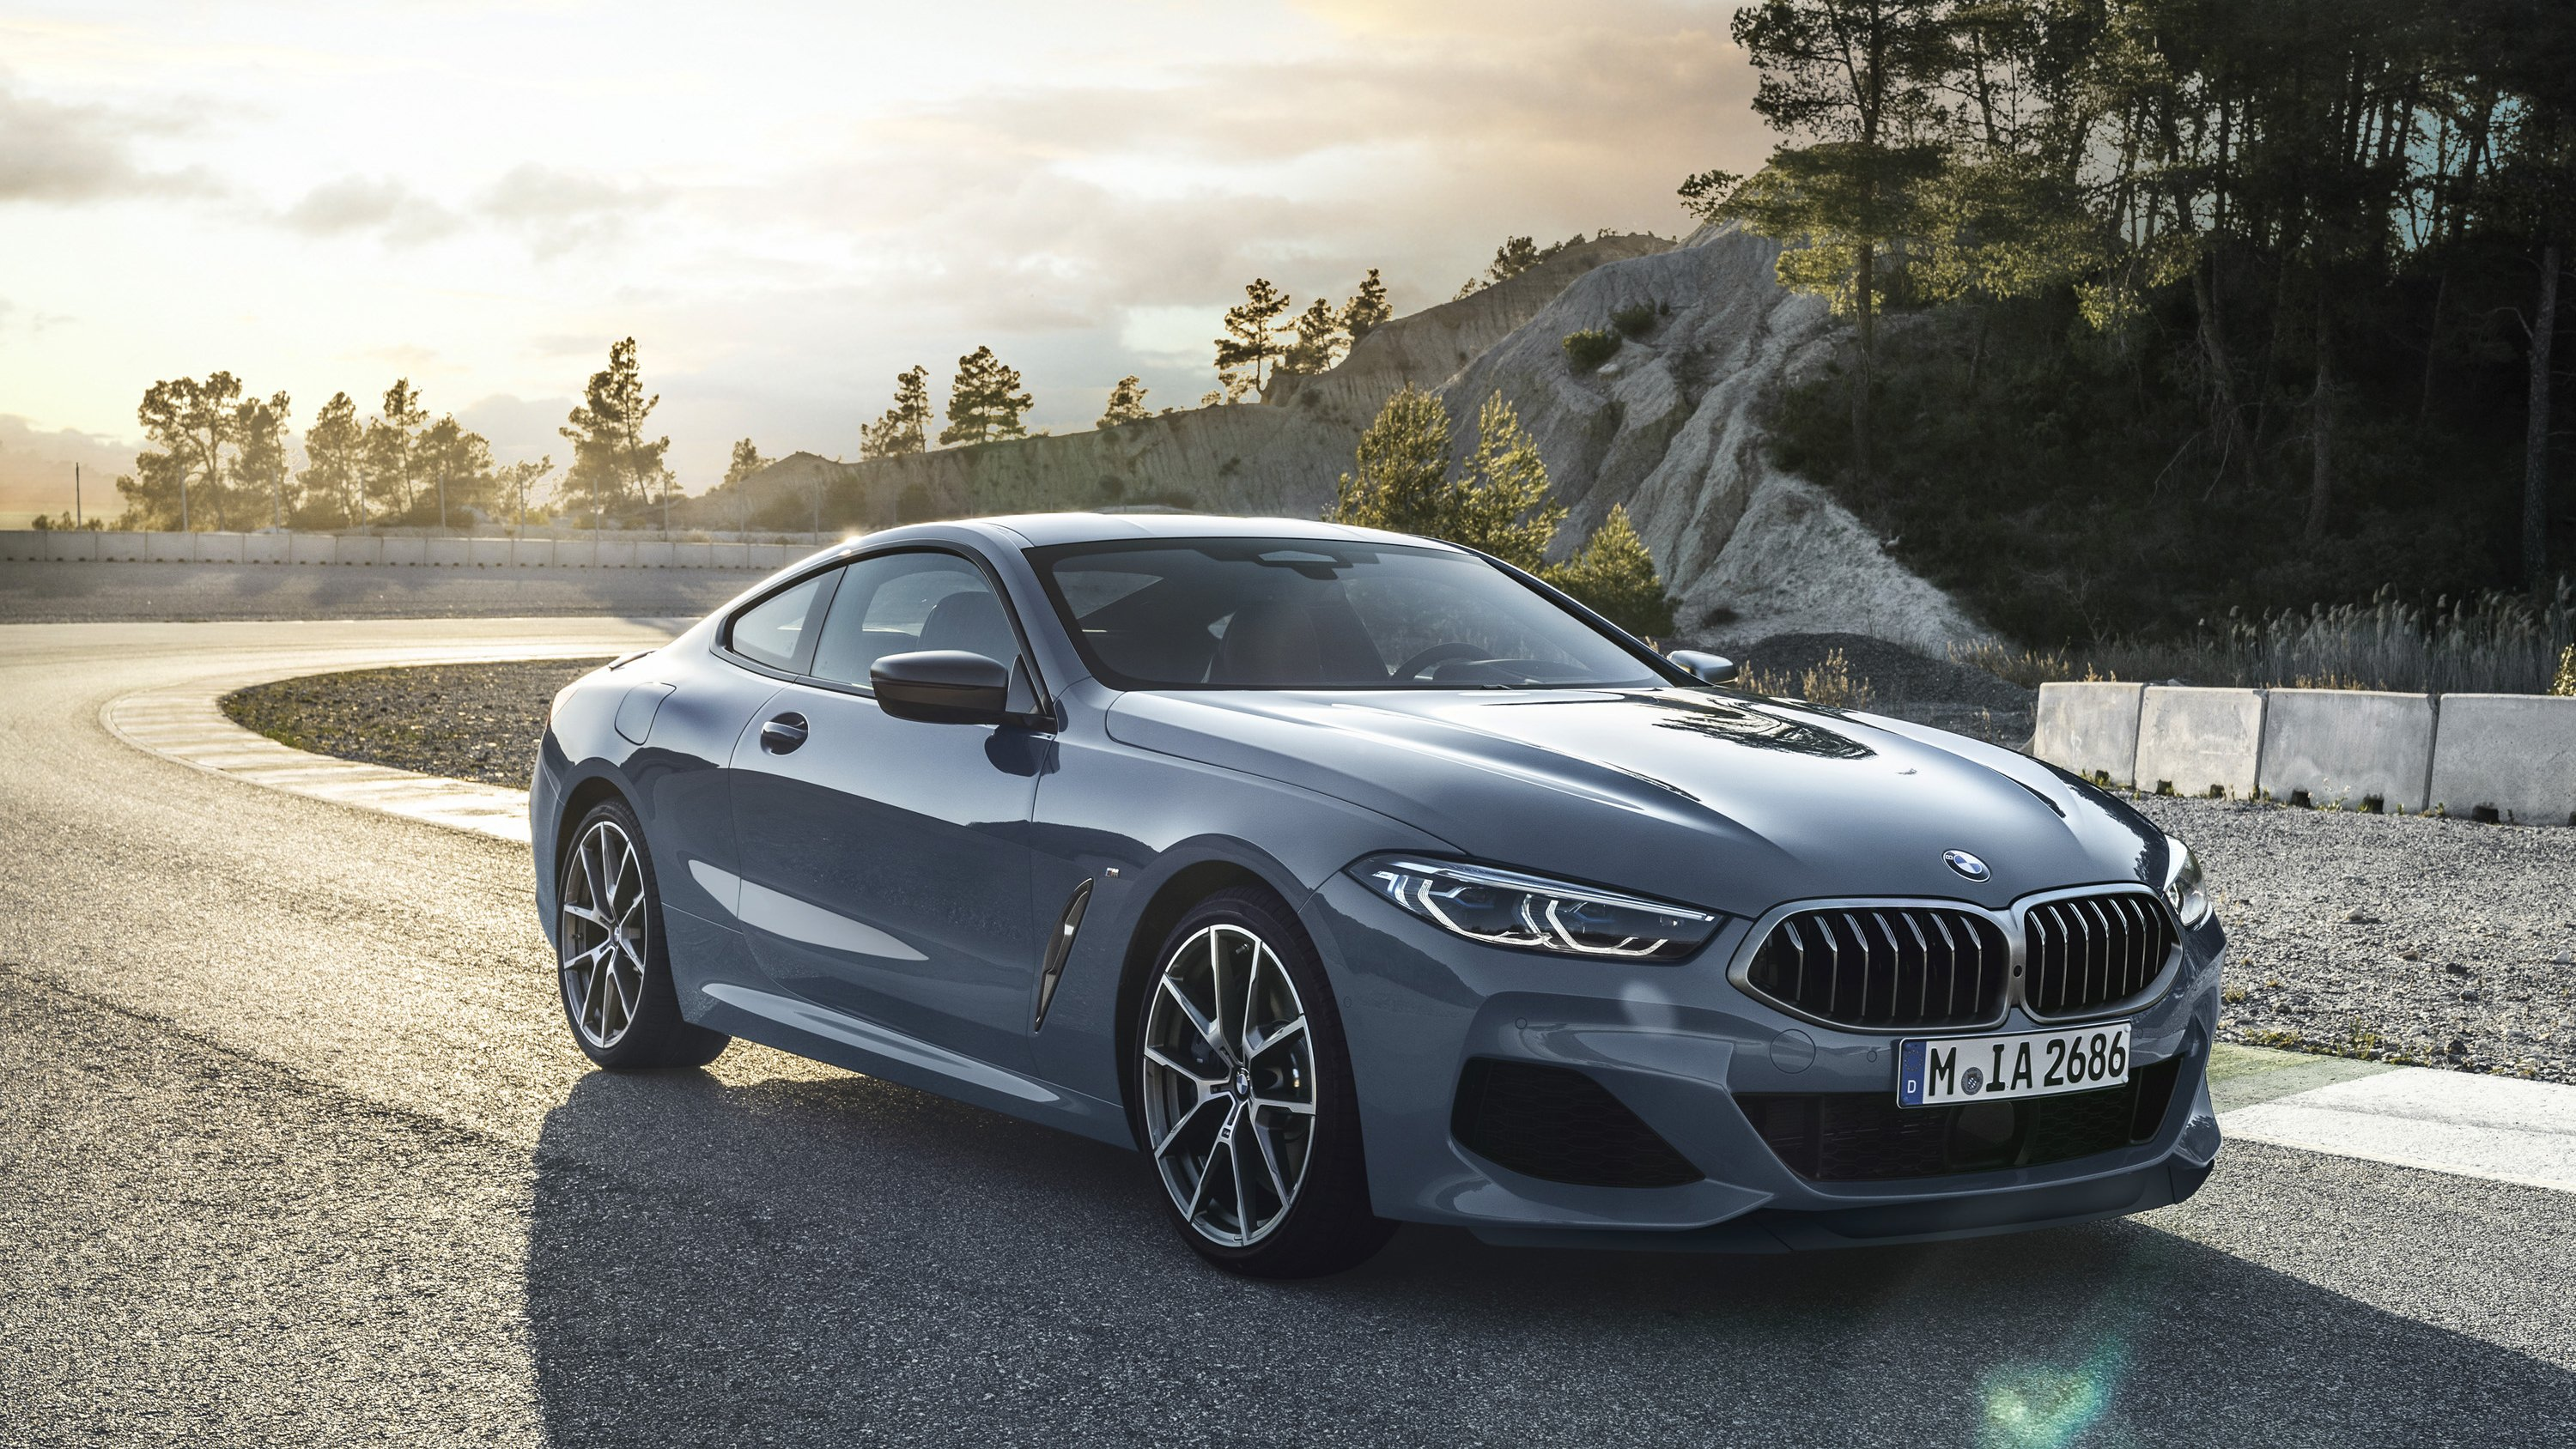 Bmw 8 Series Convertible Wallpapers Wallpaper Cave